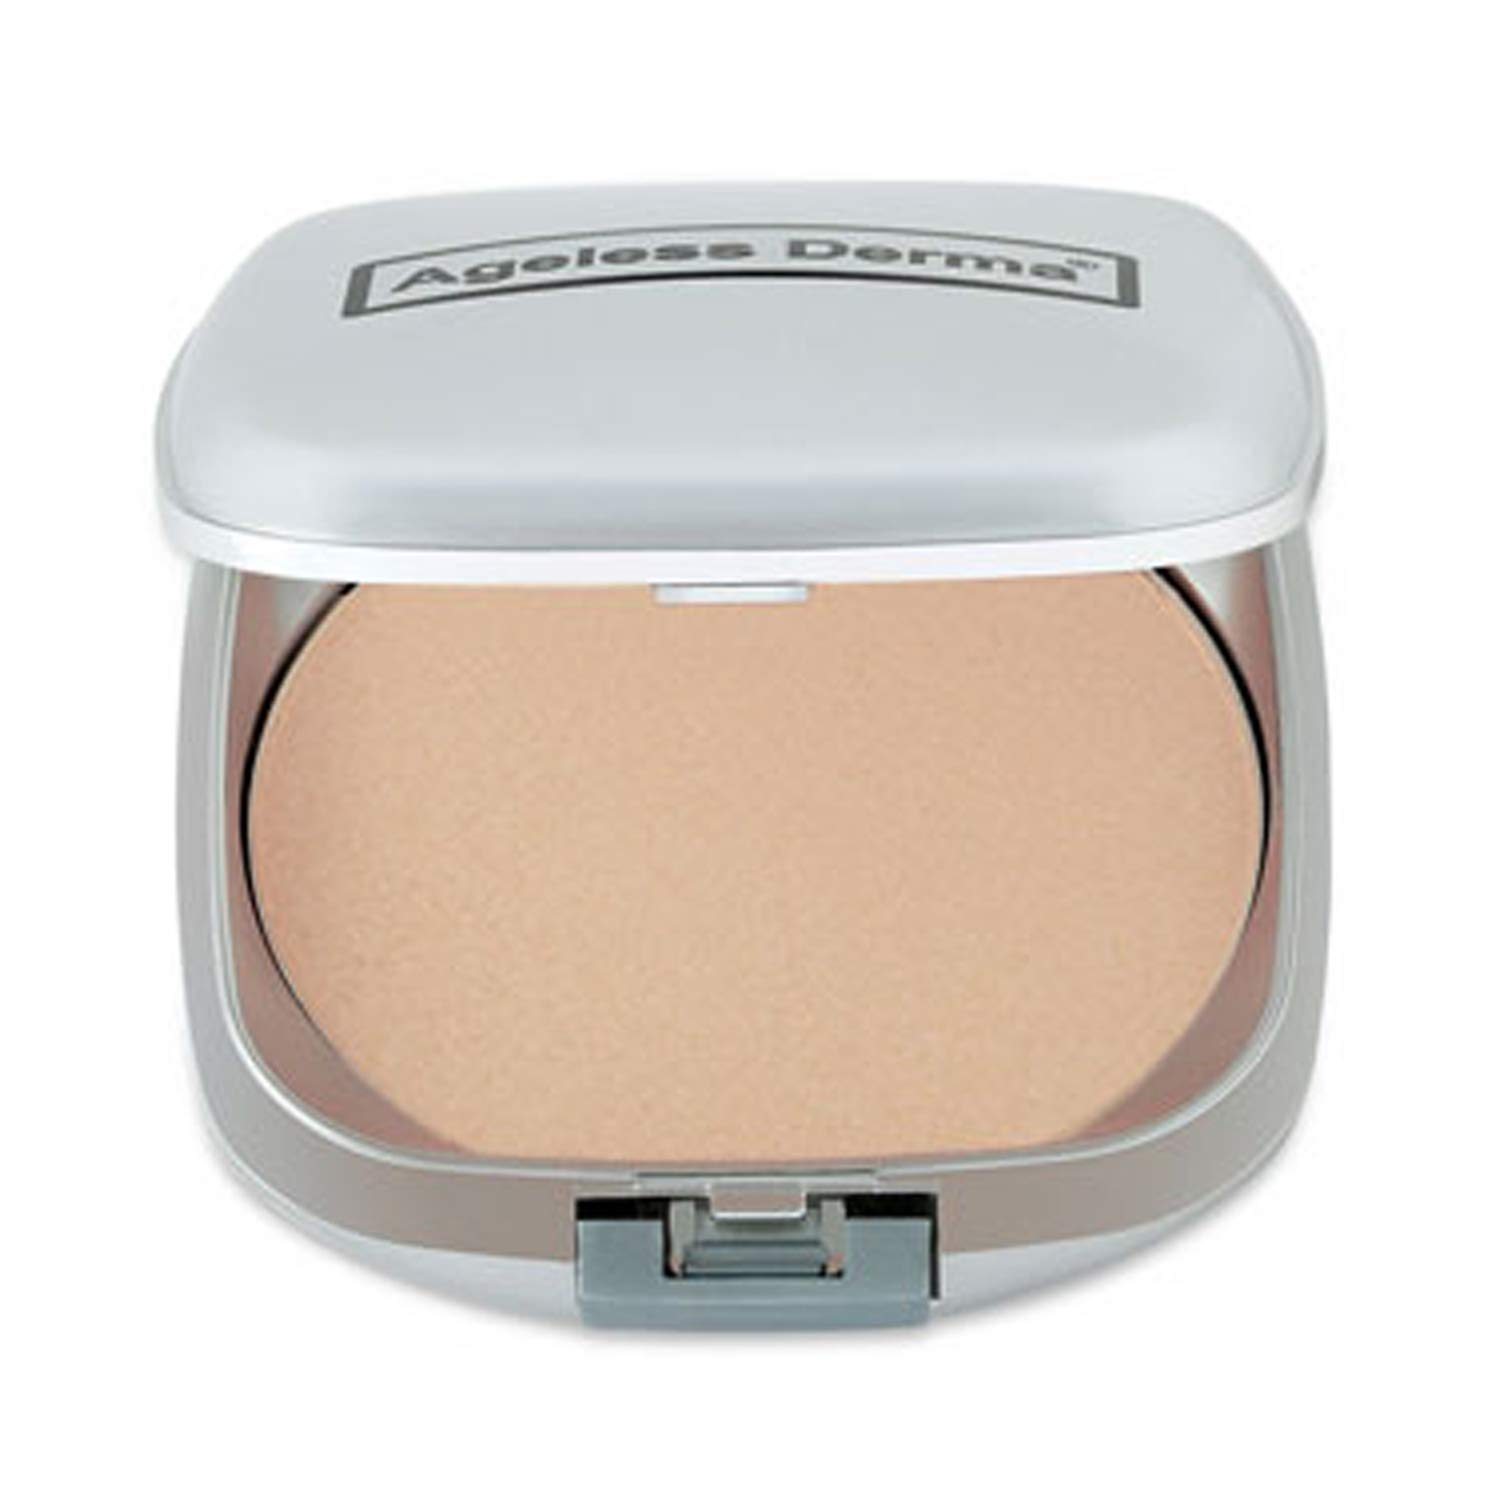 Ageless Derma Healthy Glow Mineral Highlighter Makeup (Gold)